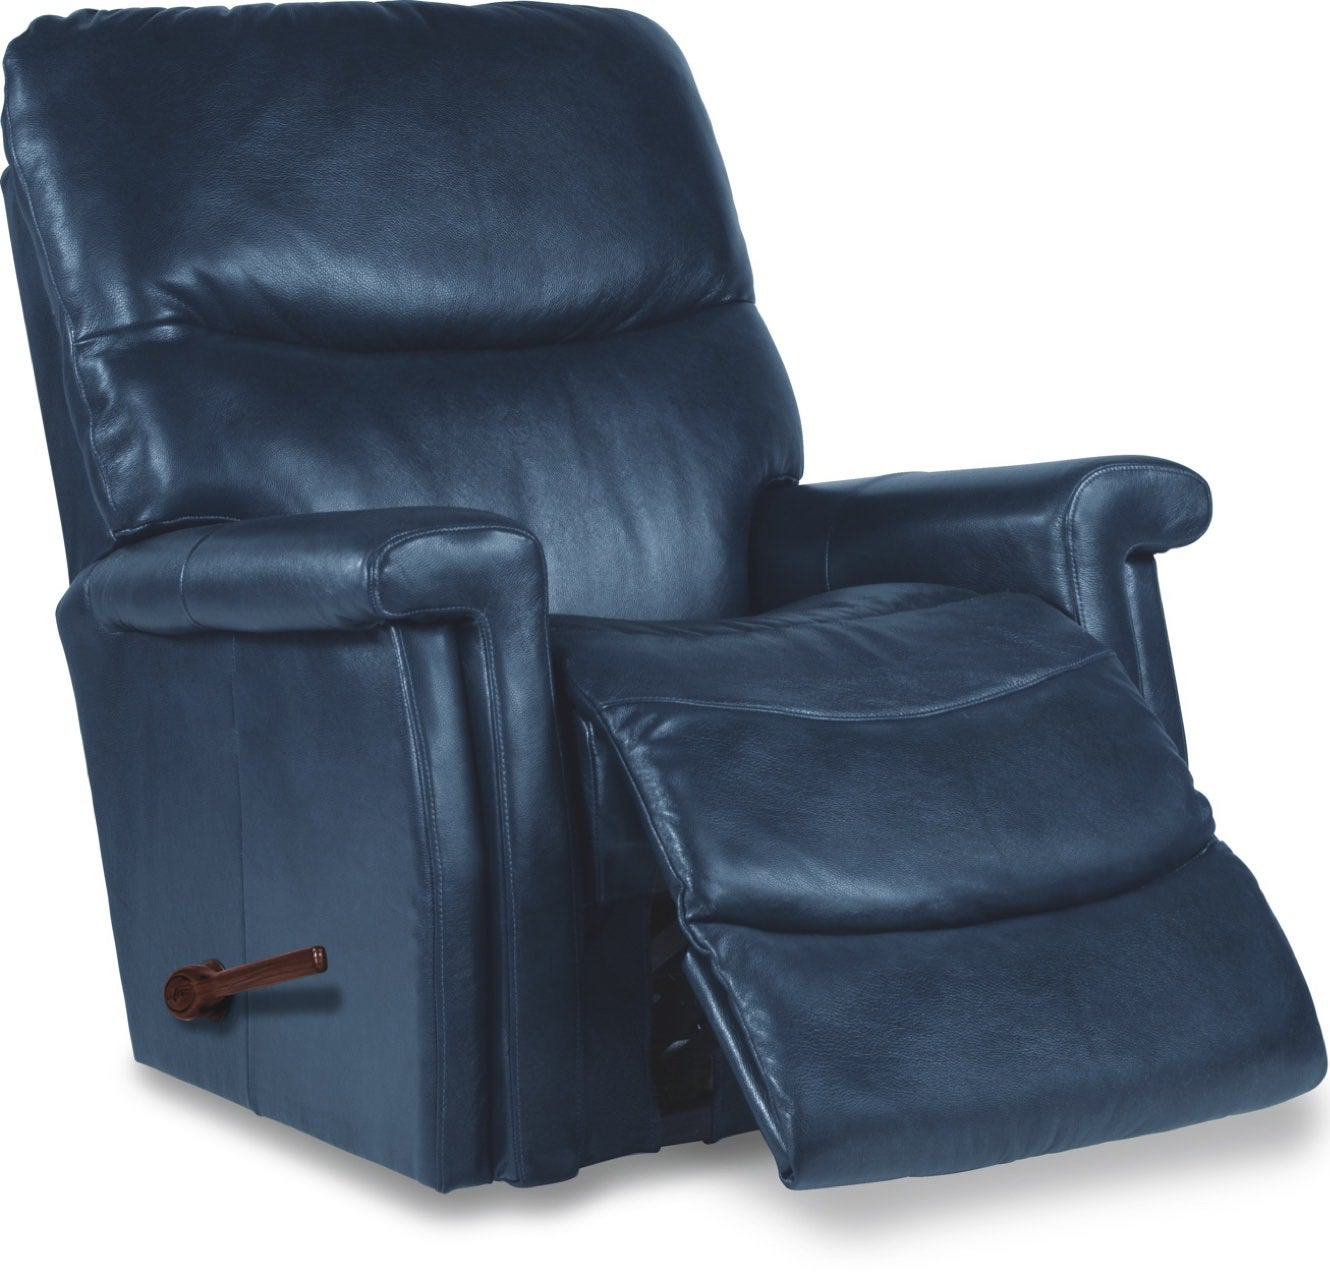 Recliner Features